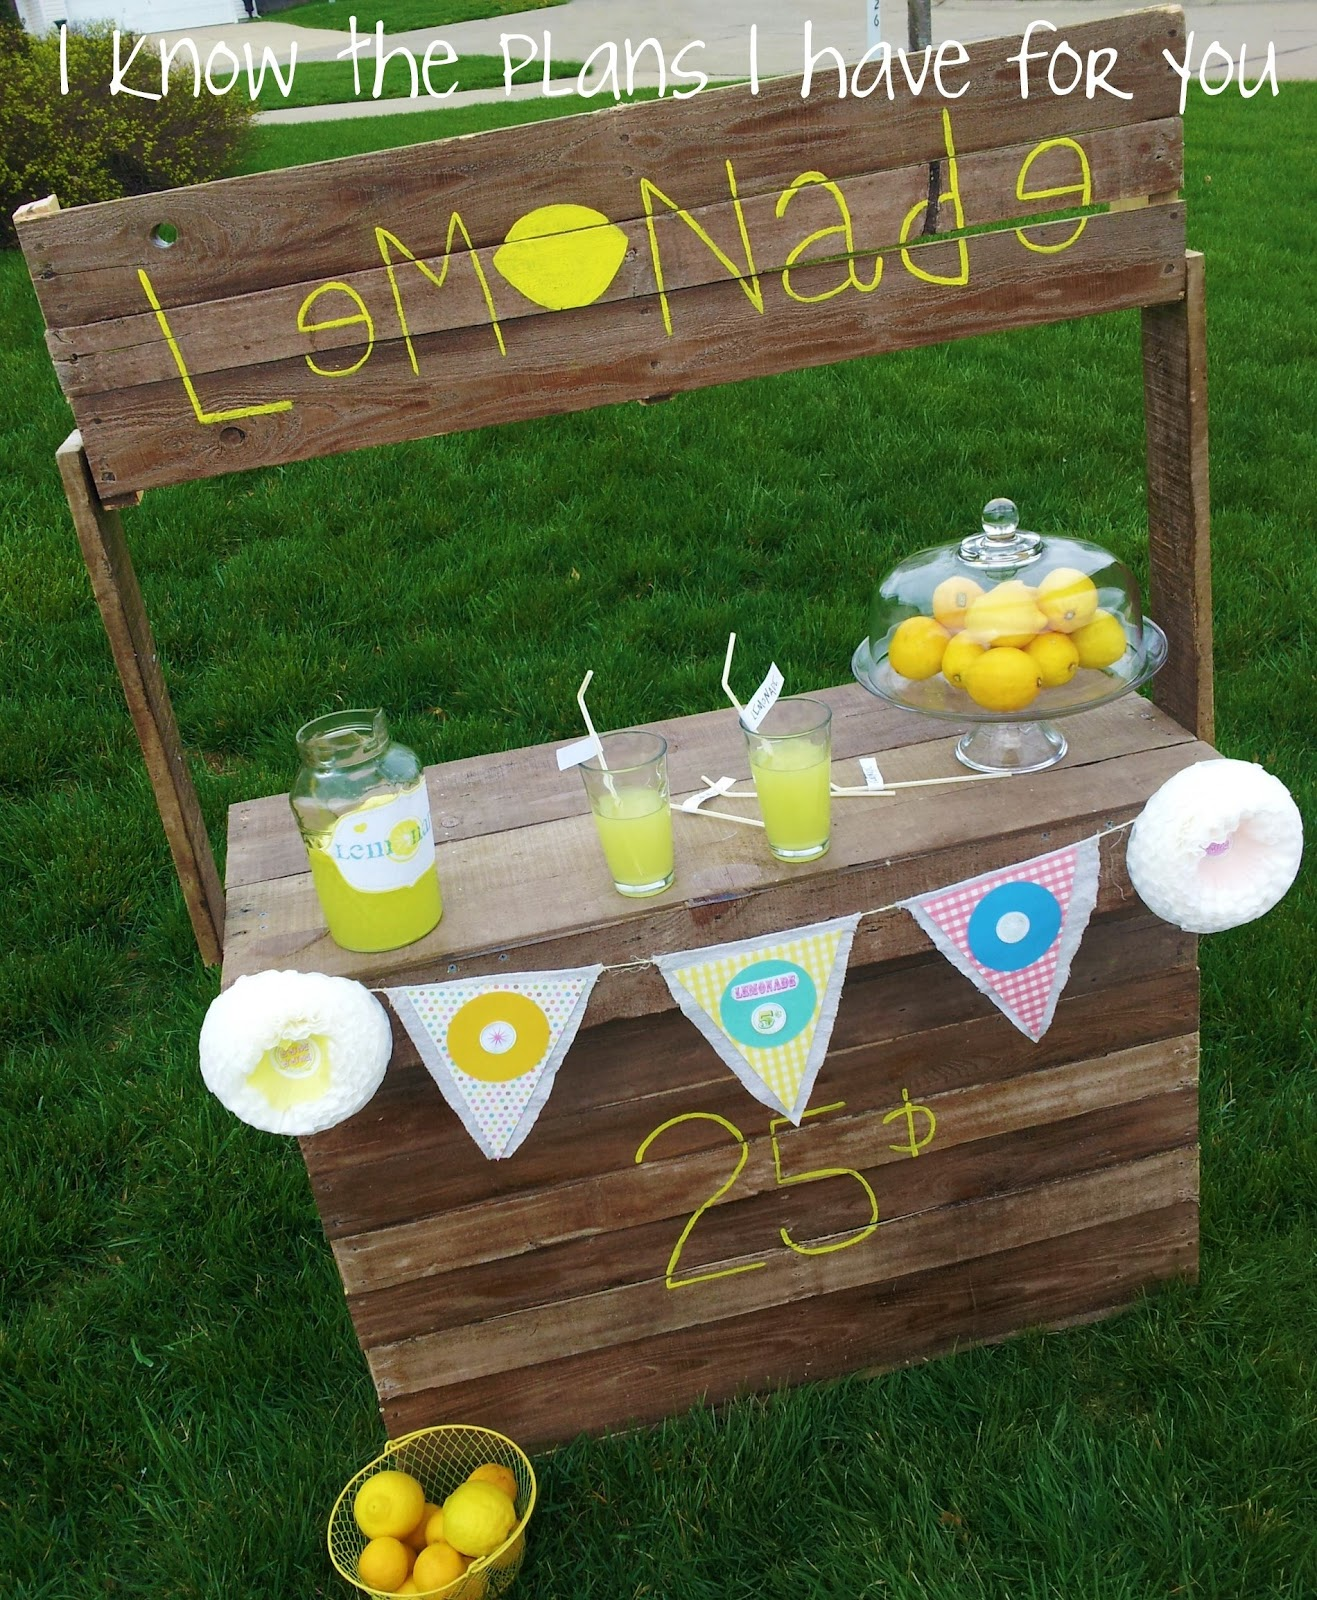 Lemonade Stand Designs : I know the plans have for you round pallet lemonade